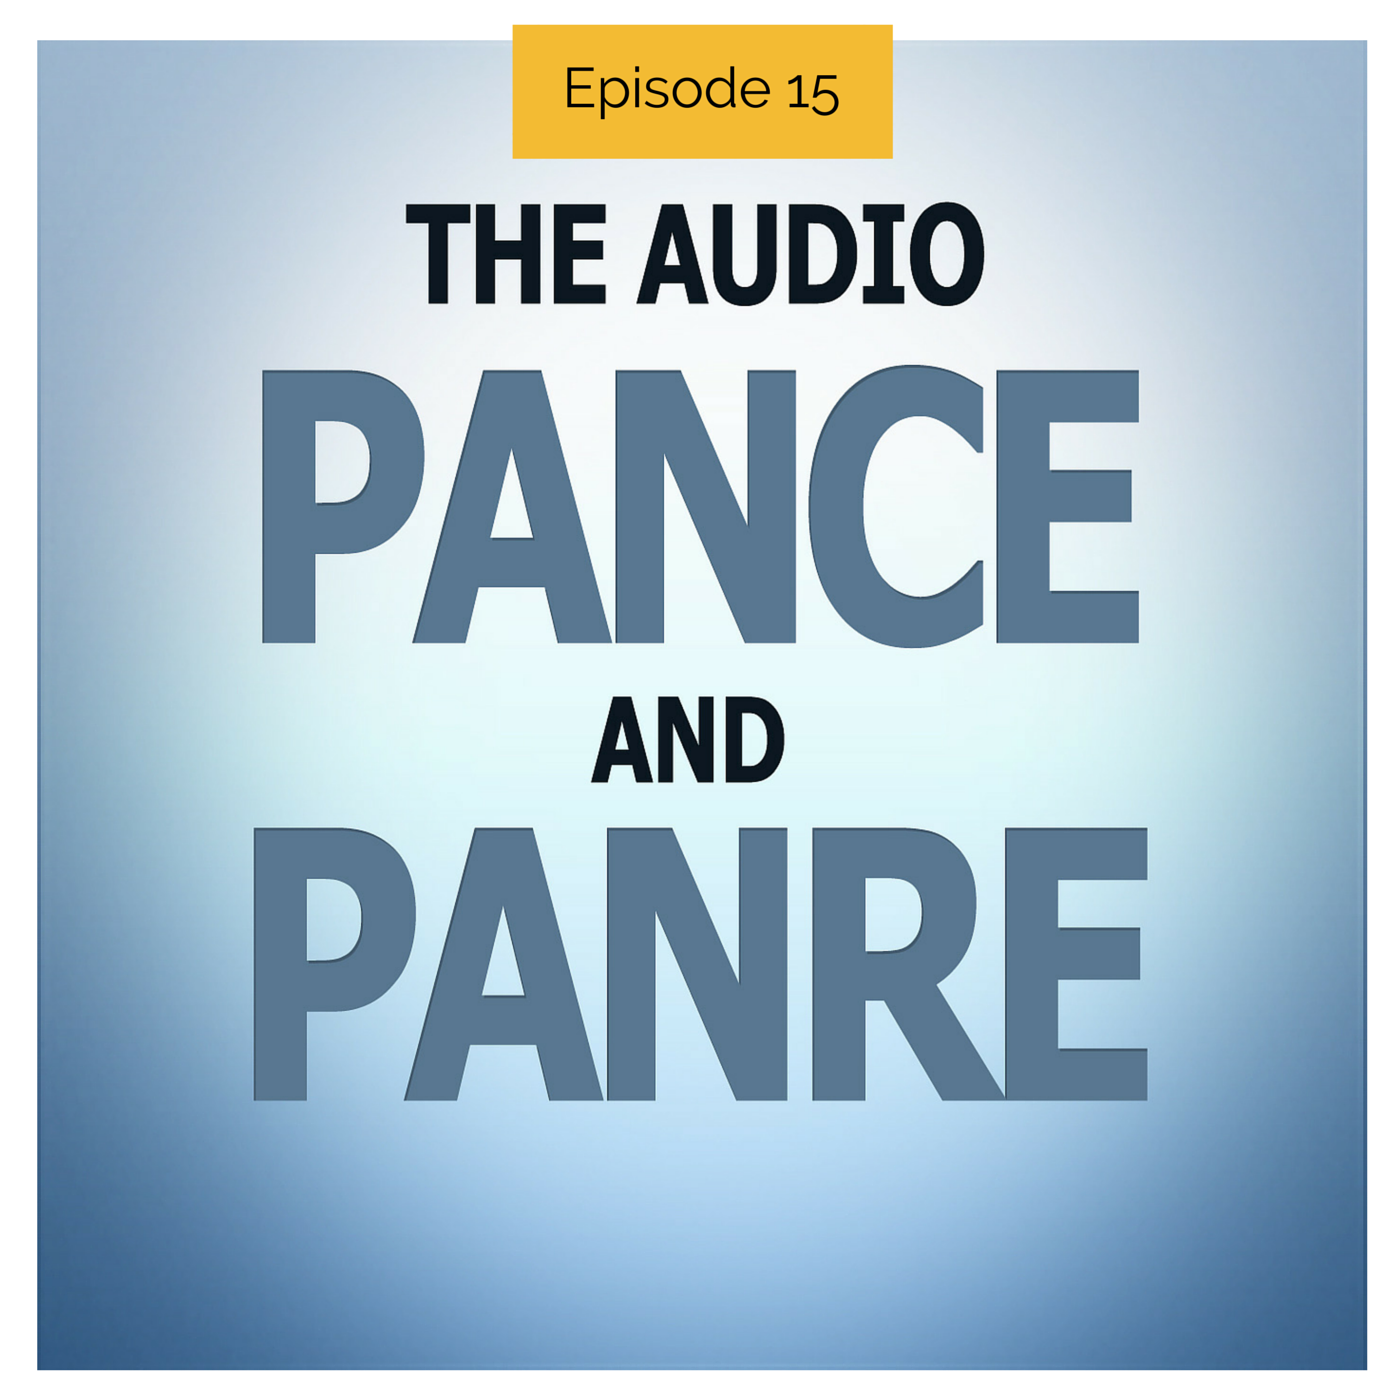 Episode 15 The Audio Pance And Panre Board Review